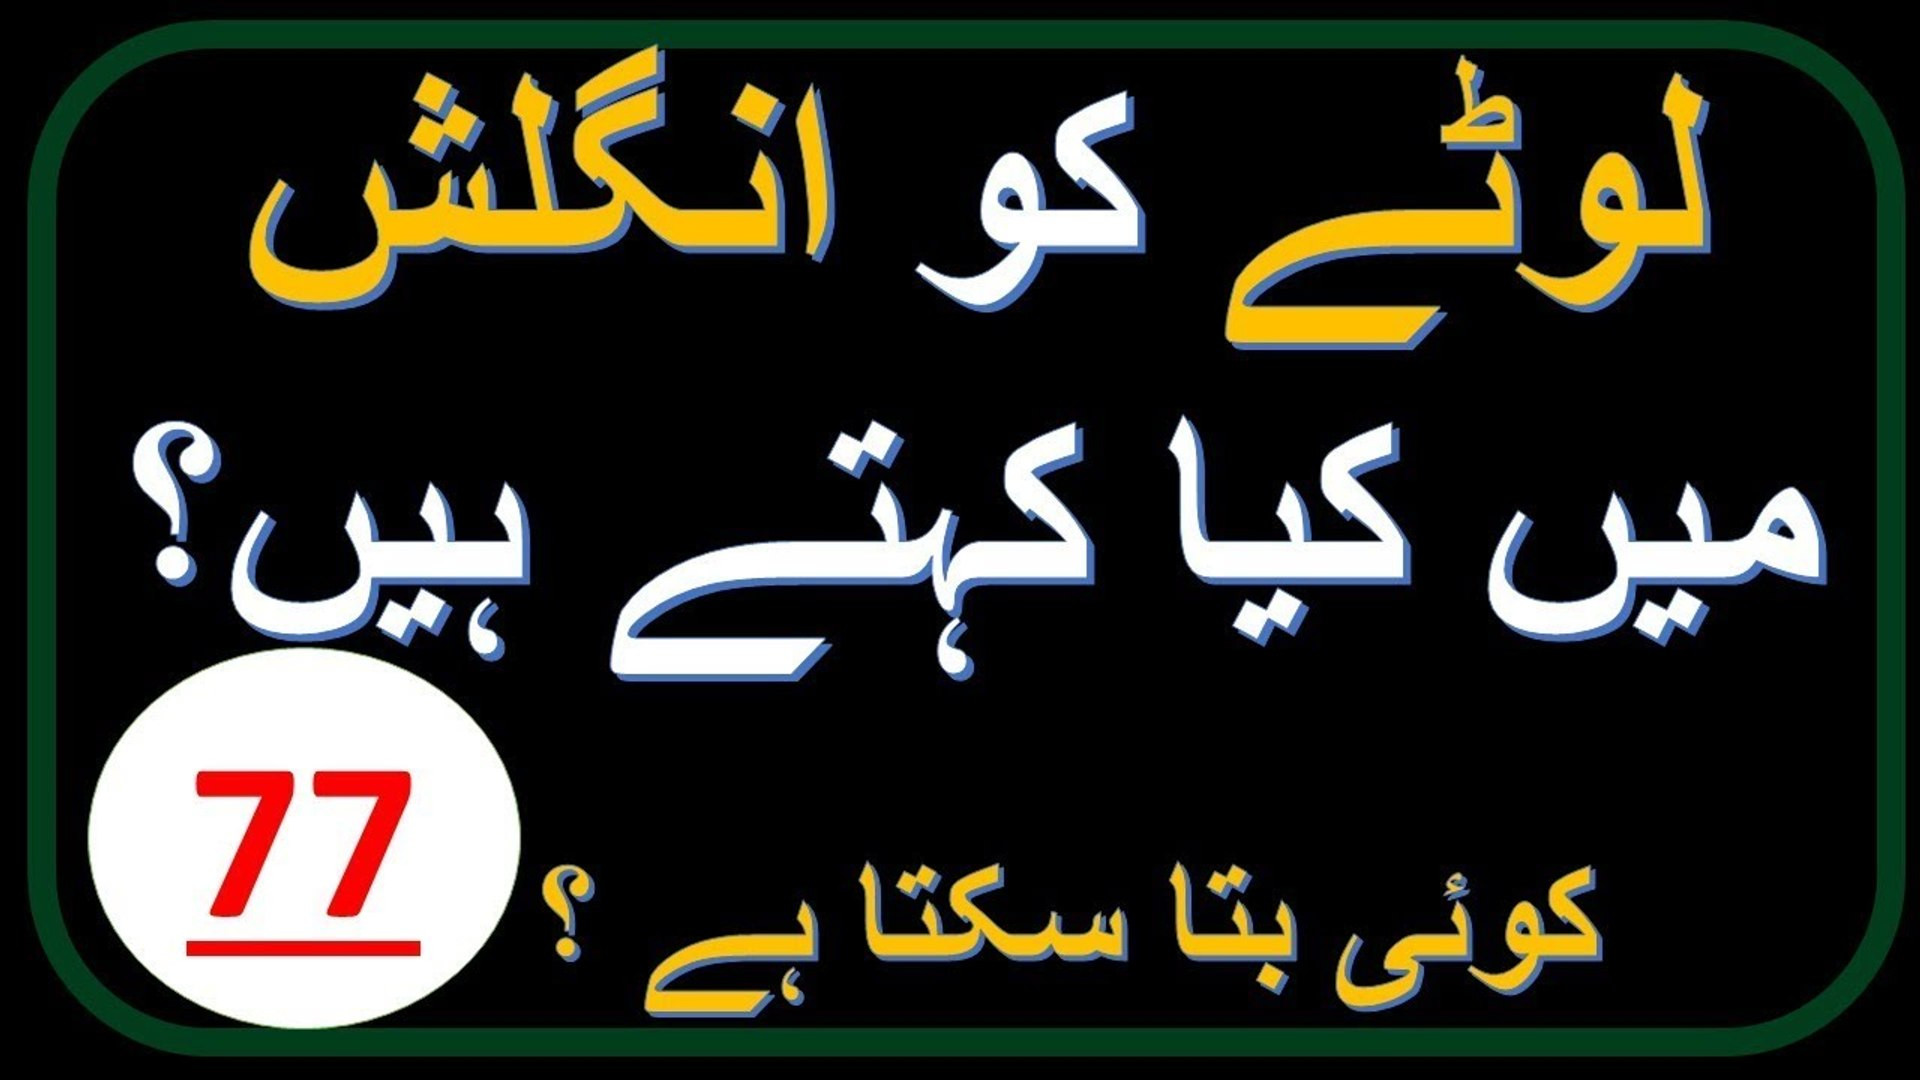 Brain Iq Test Common Sense Question Riddles In Urdu And Hindi Video 77 Video Dailymotion